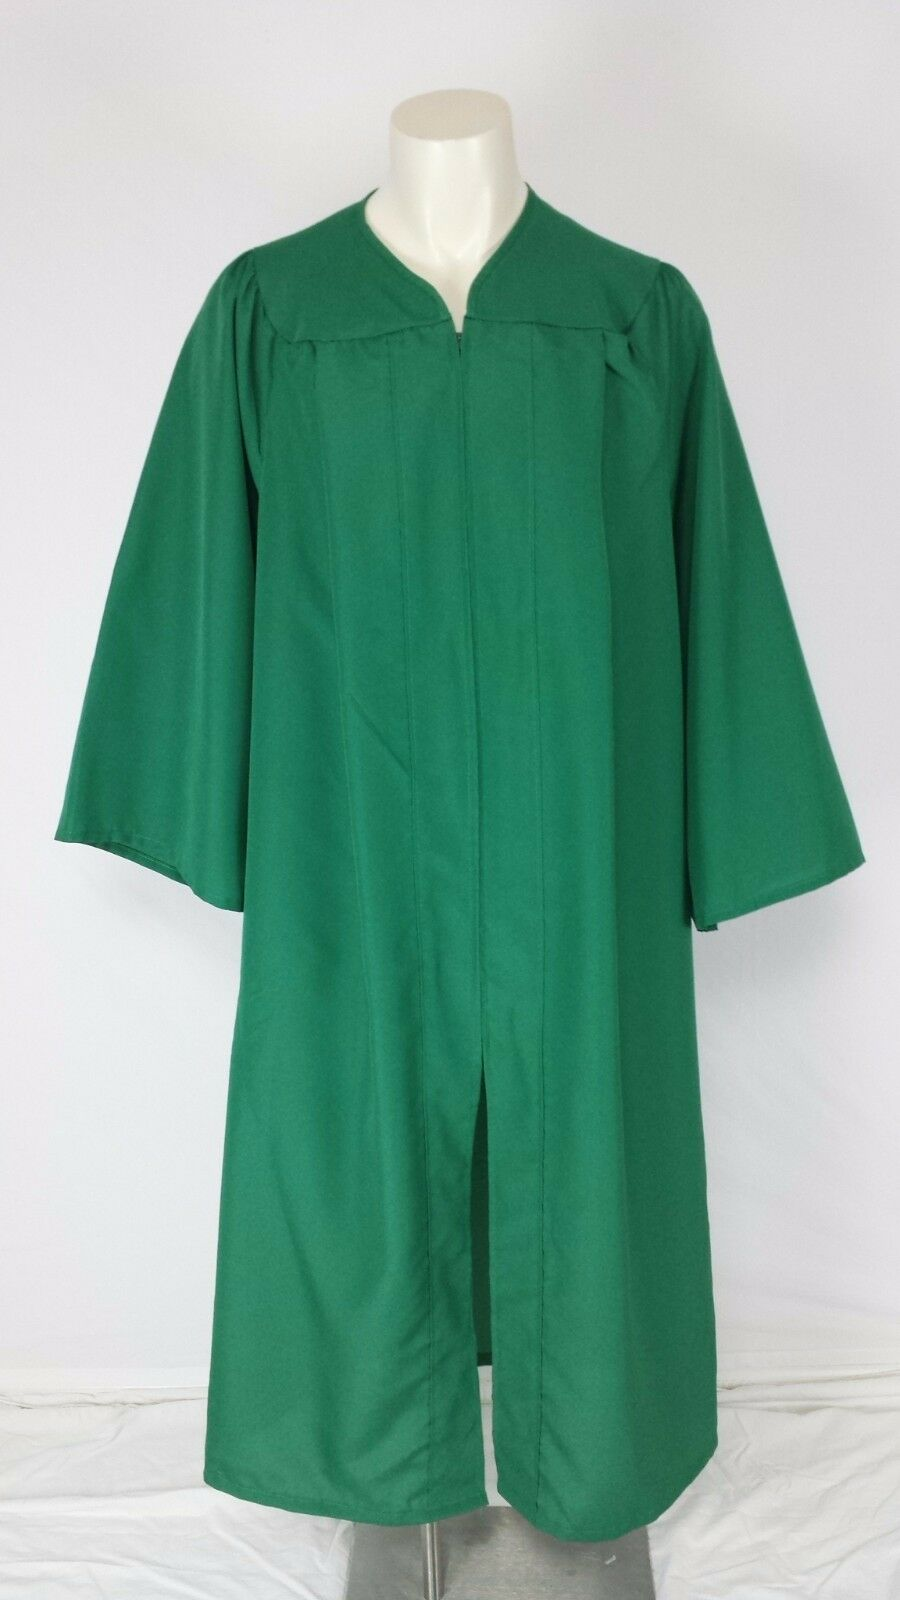 Green Graduation Gown Choir Robe Clergy Costume Matte Many Size ...